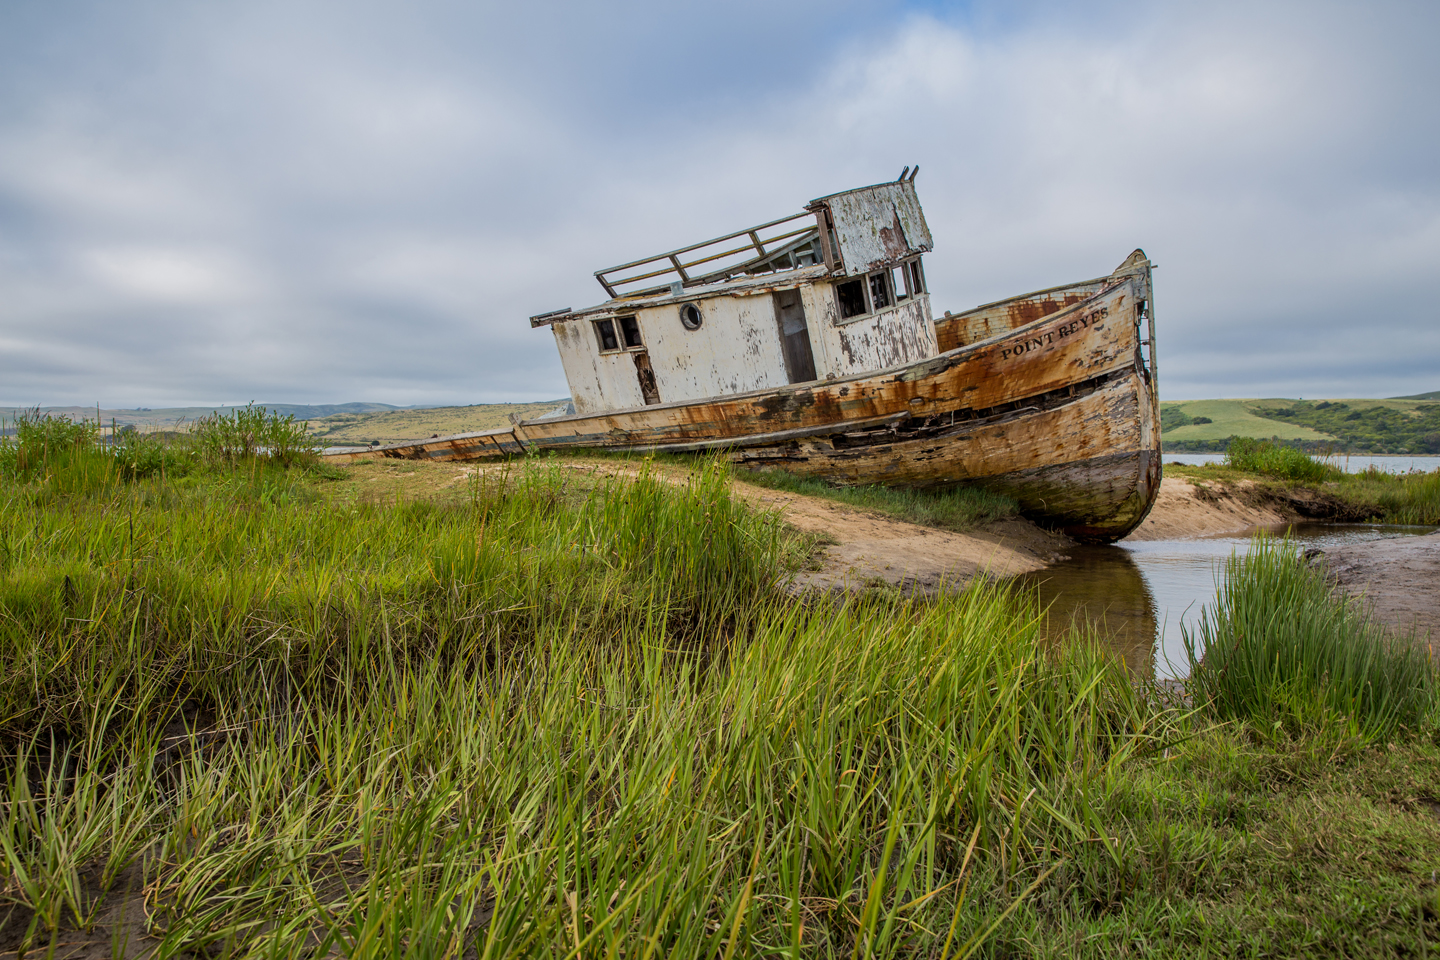 Point-Reyes-Shipwreck-Grass-Julie-Boyd-Photography